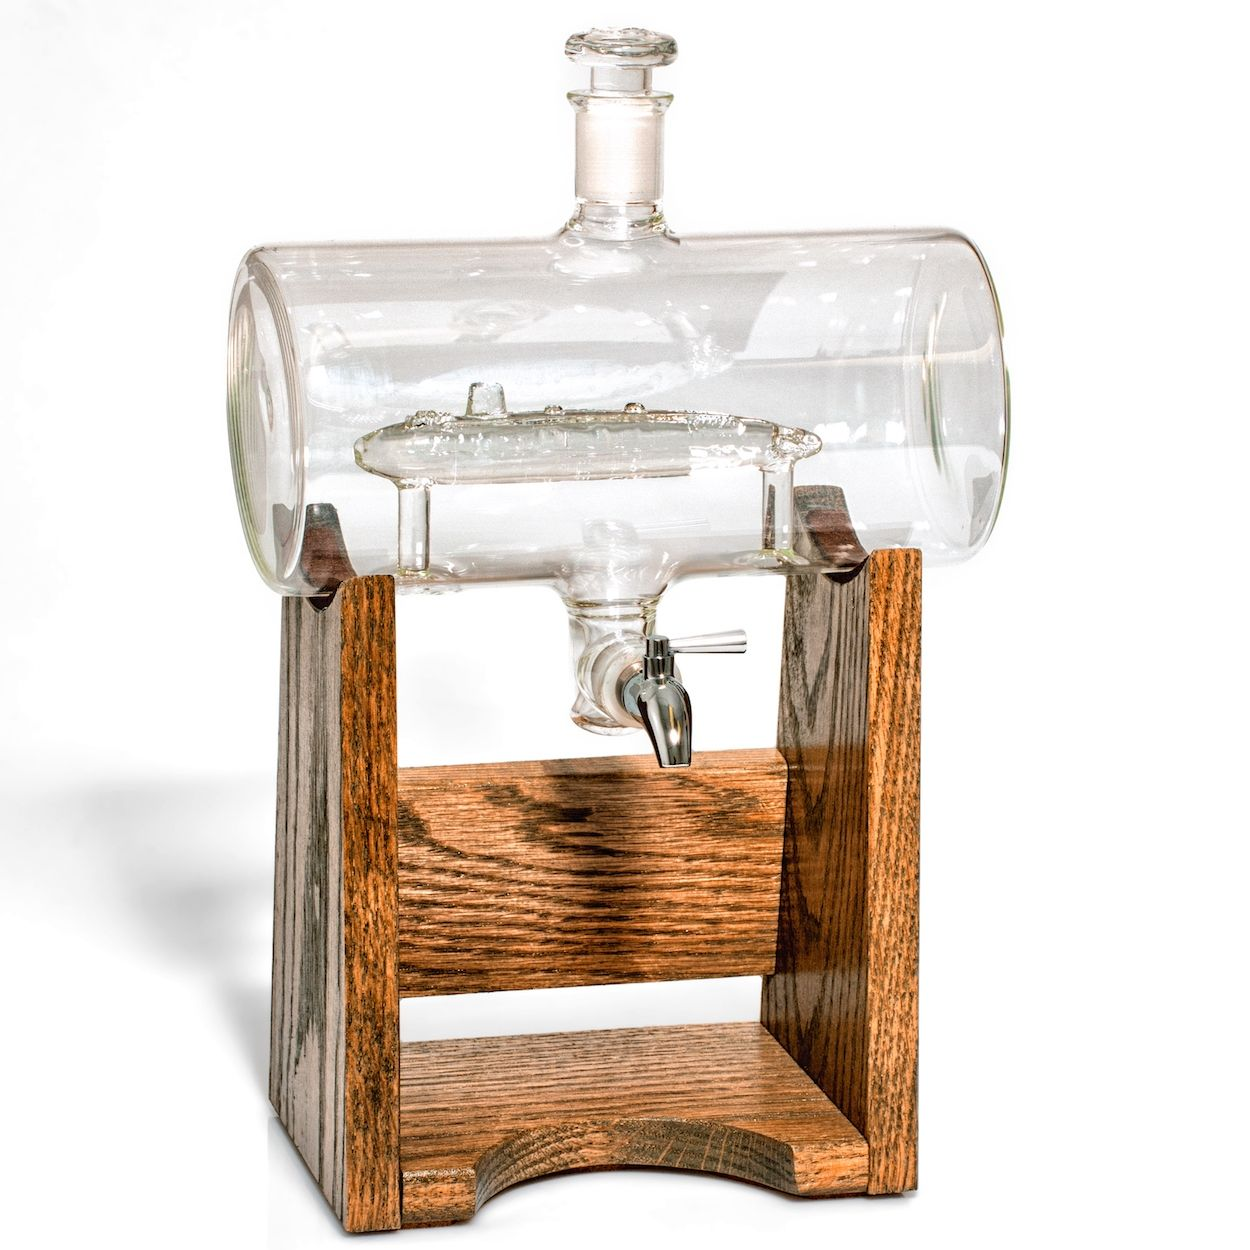 Submarine Decanter with Spigot